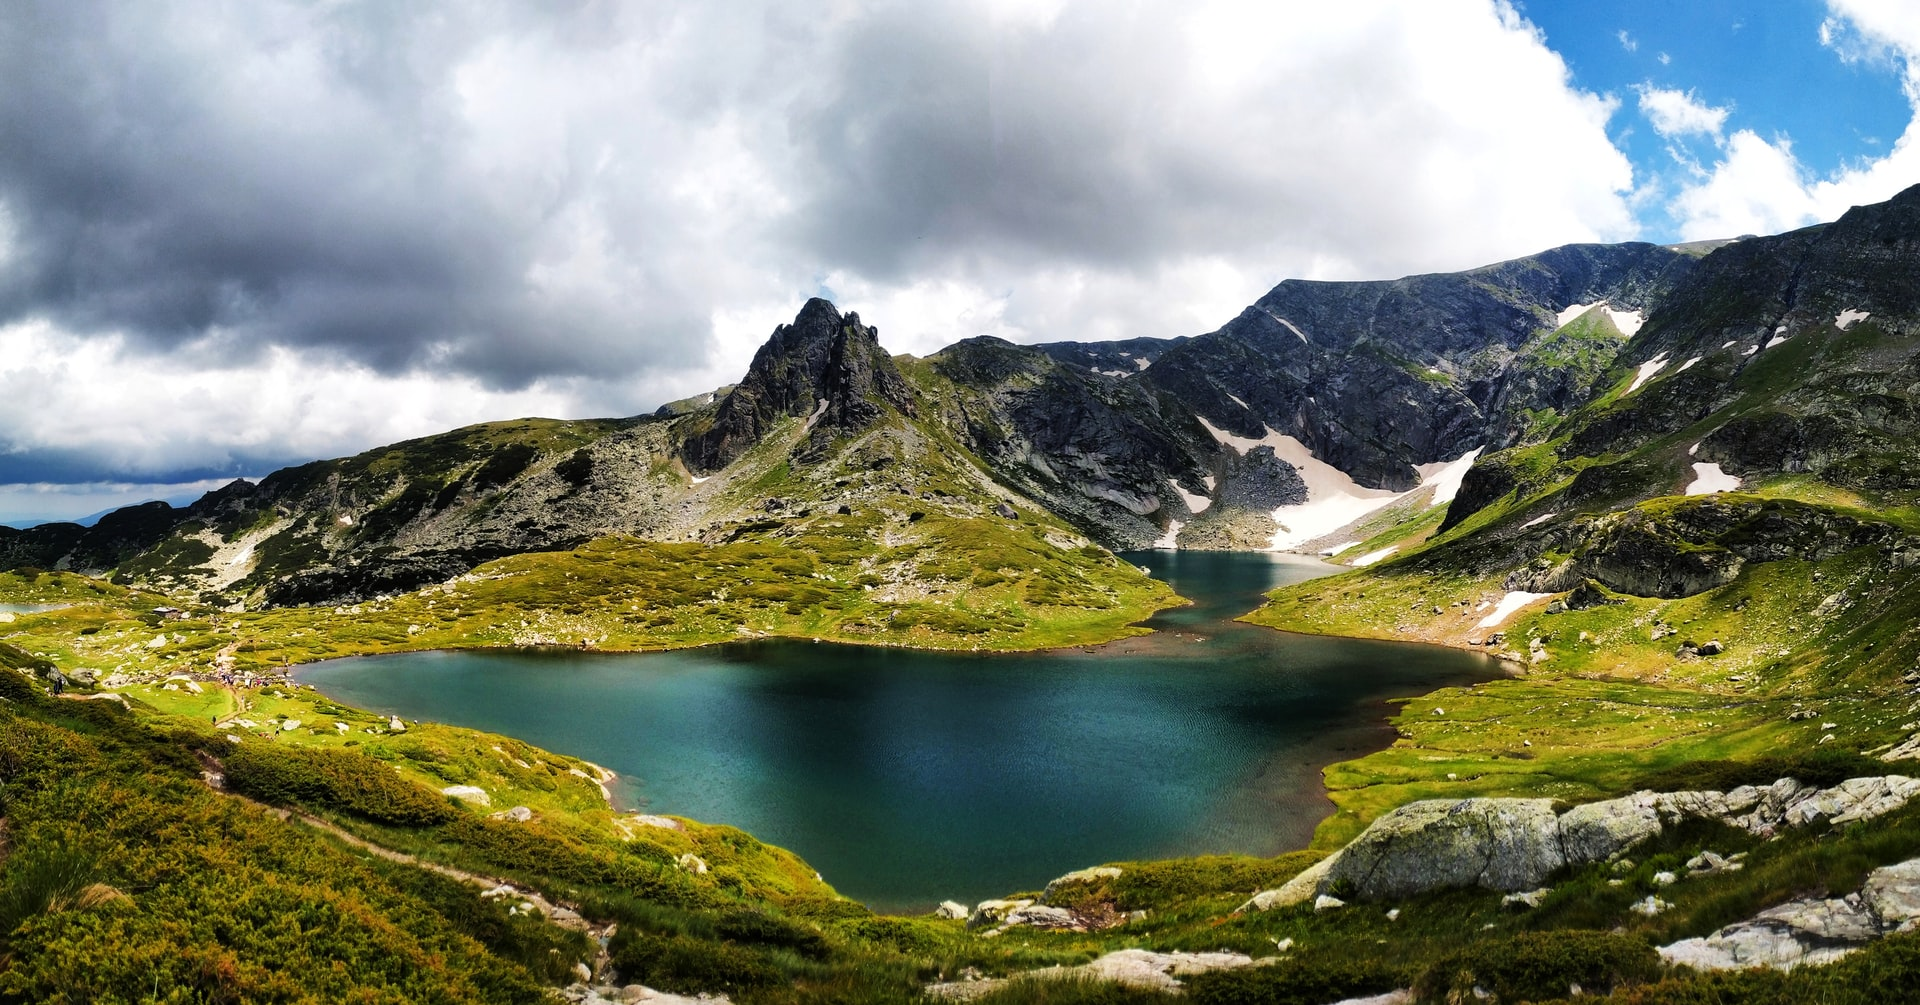 Bulgaria mountains lake nature visit travel